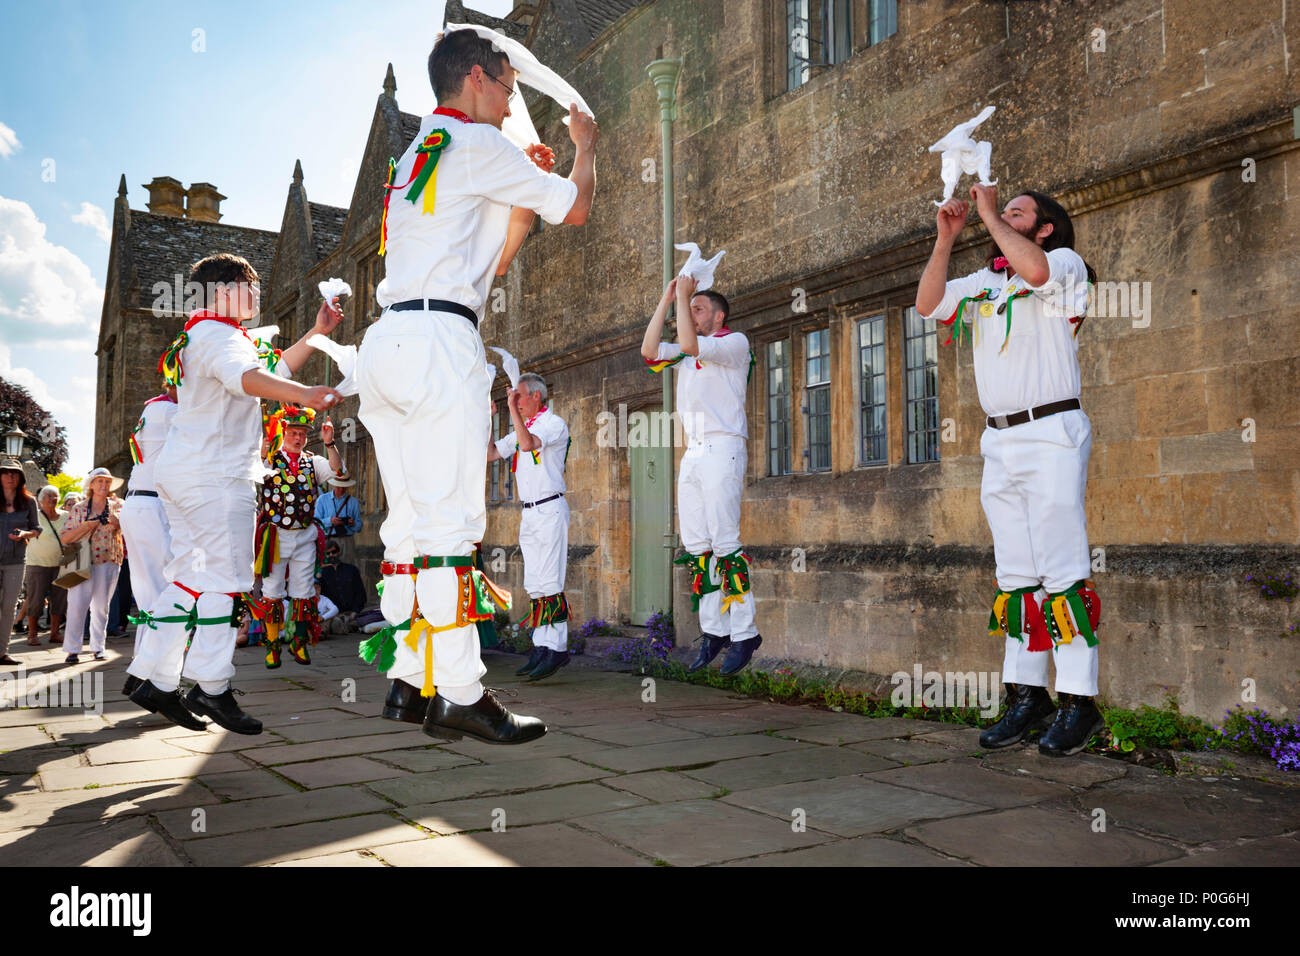 Morris dance outside the Chipping Campden Almshouses during the Scuttlebrook Wake, Chipping Campden, Cotswolds, Gloucestershire, England, UK - Stock Image